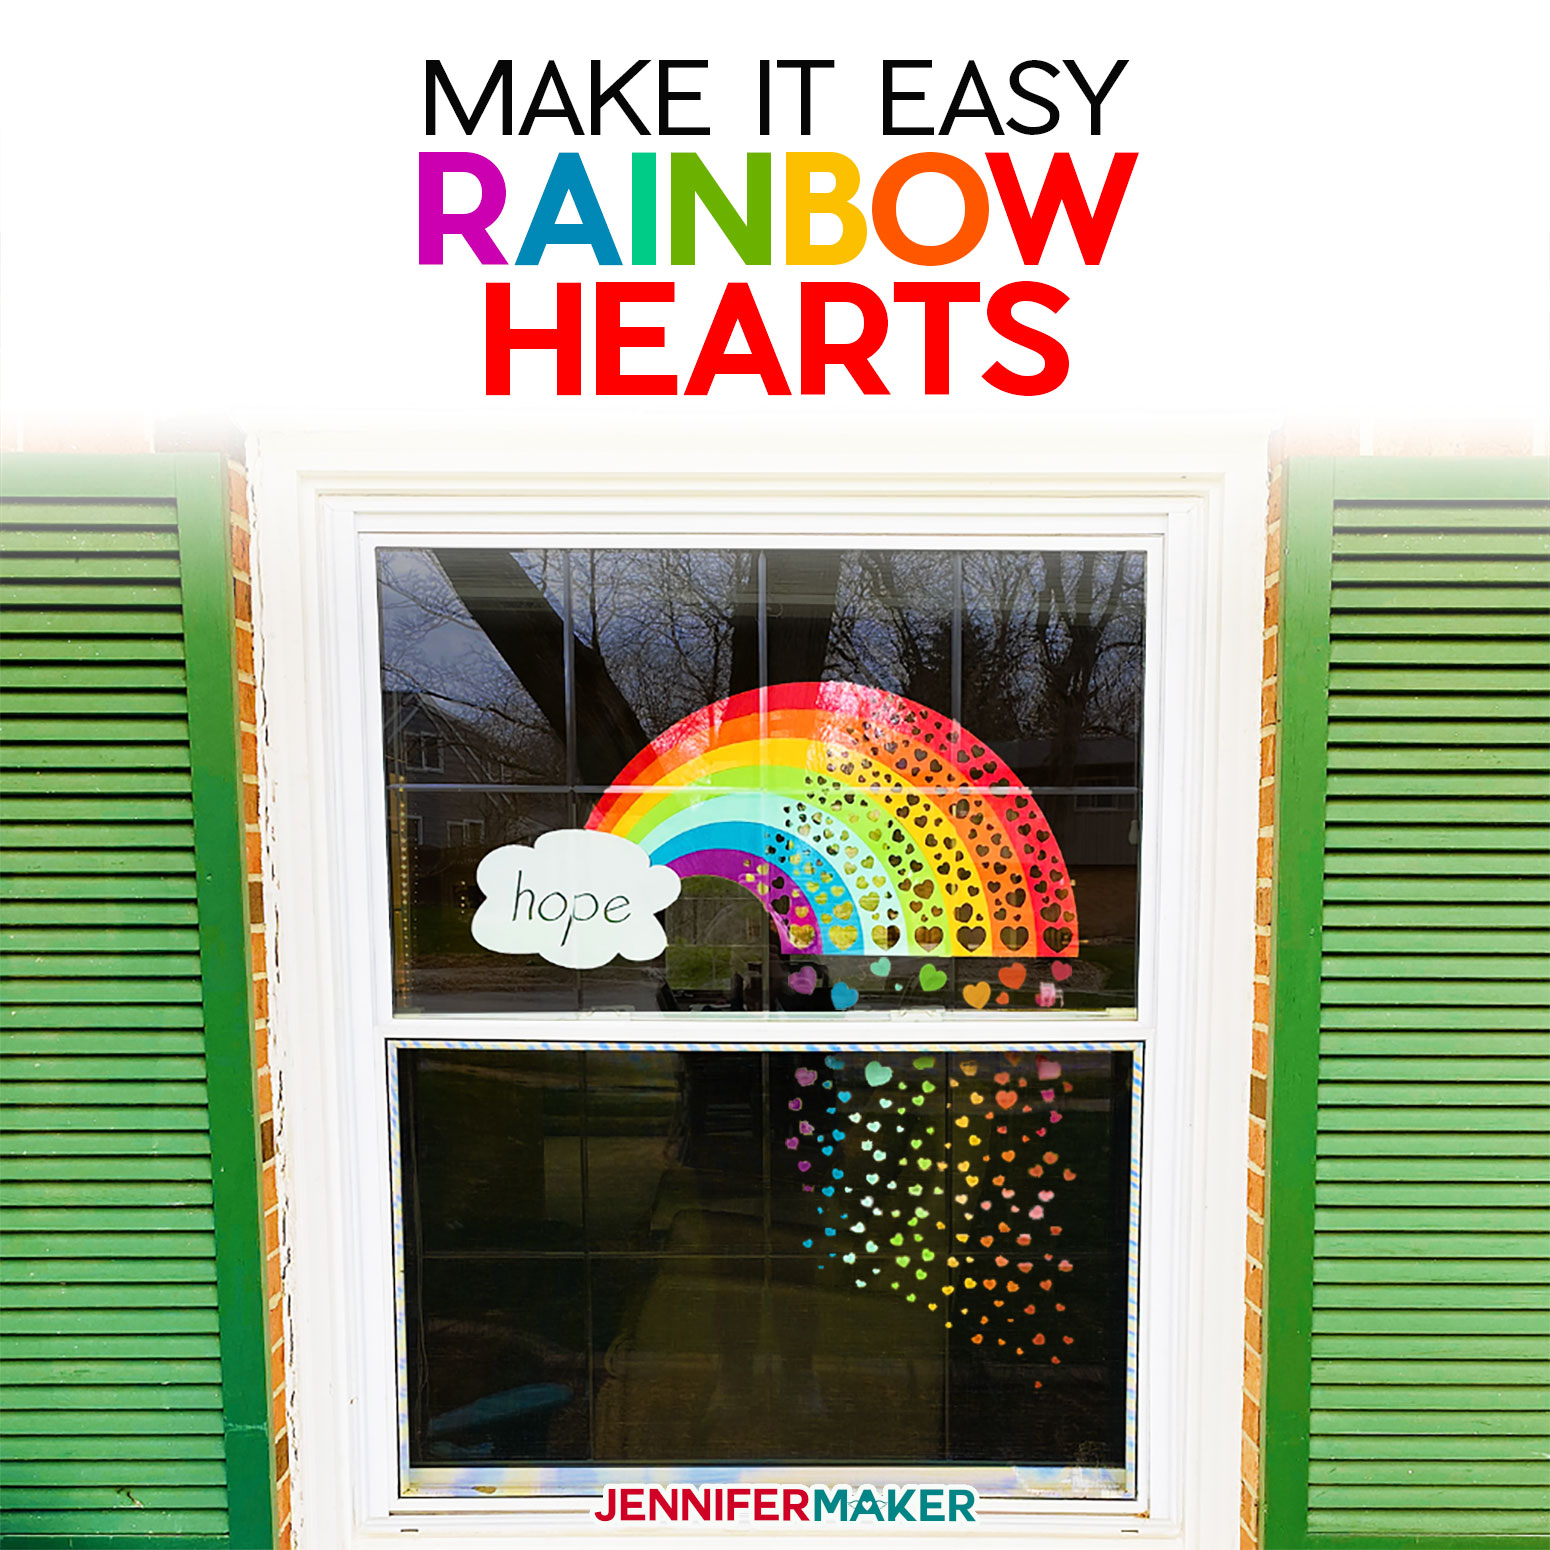 Window Rainbow of Hearts to Show Hope and Support to Our Communities - Free Printable PDF and SVG Cut File for Cricut and Silhouette